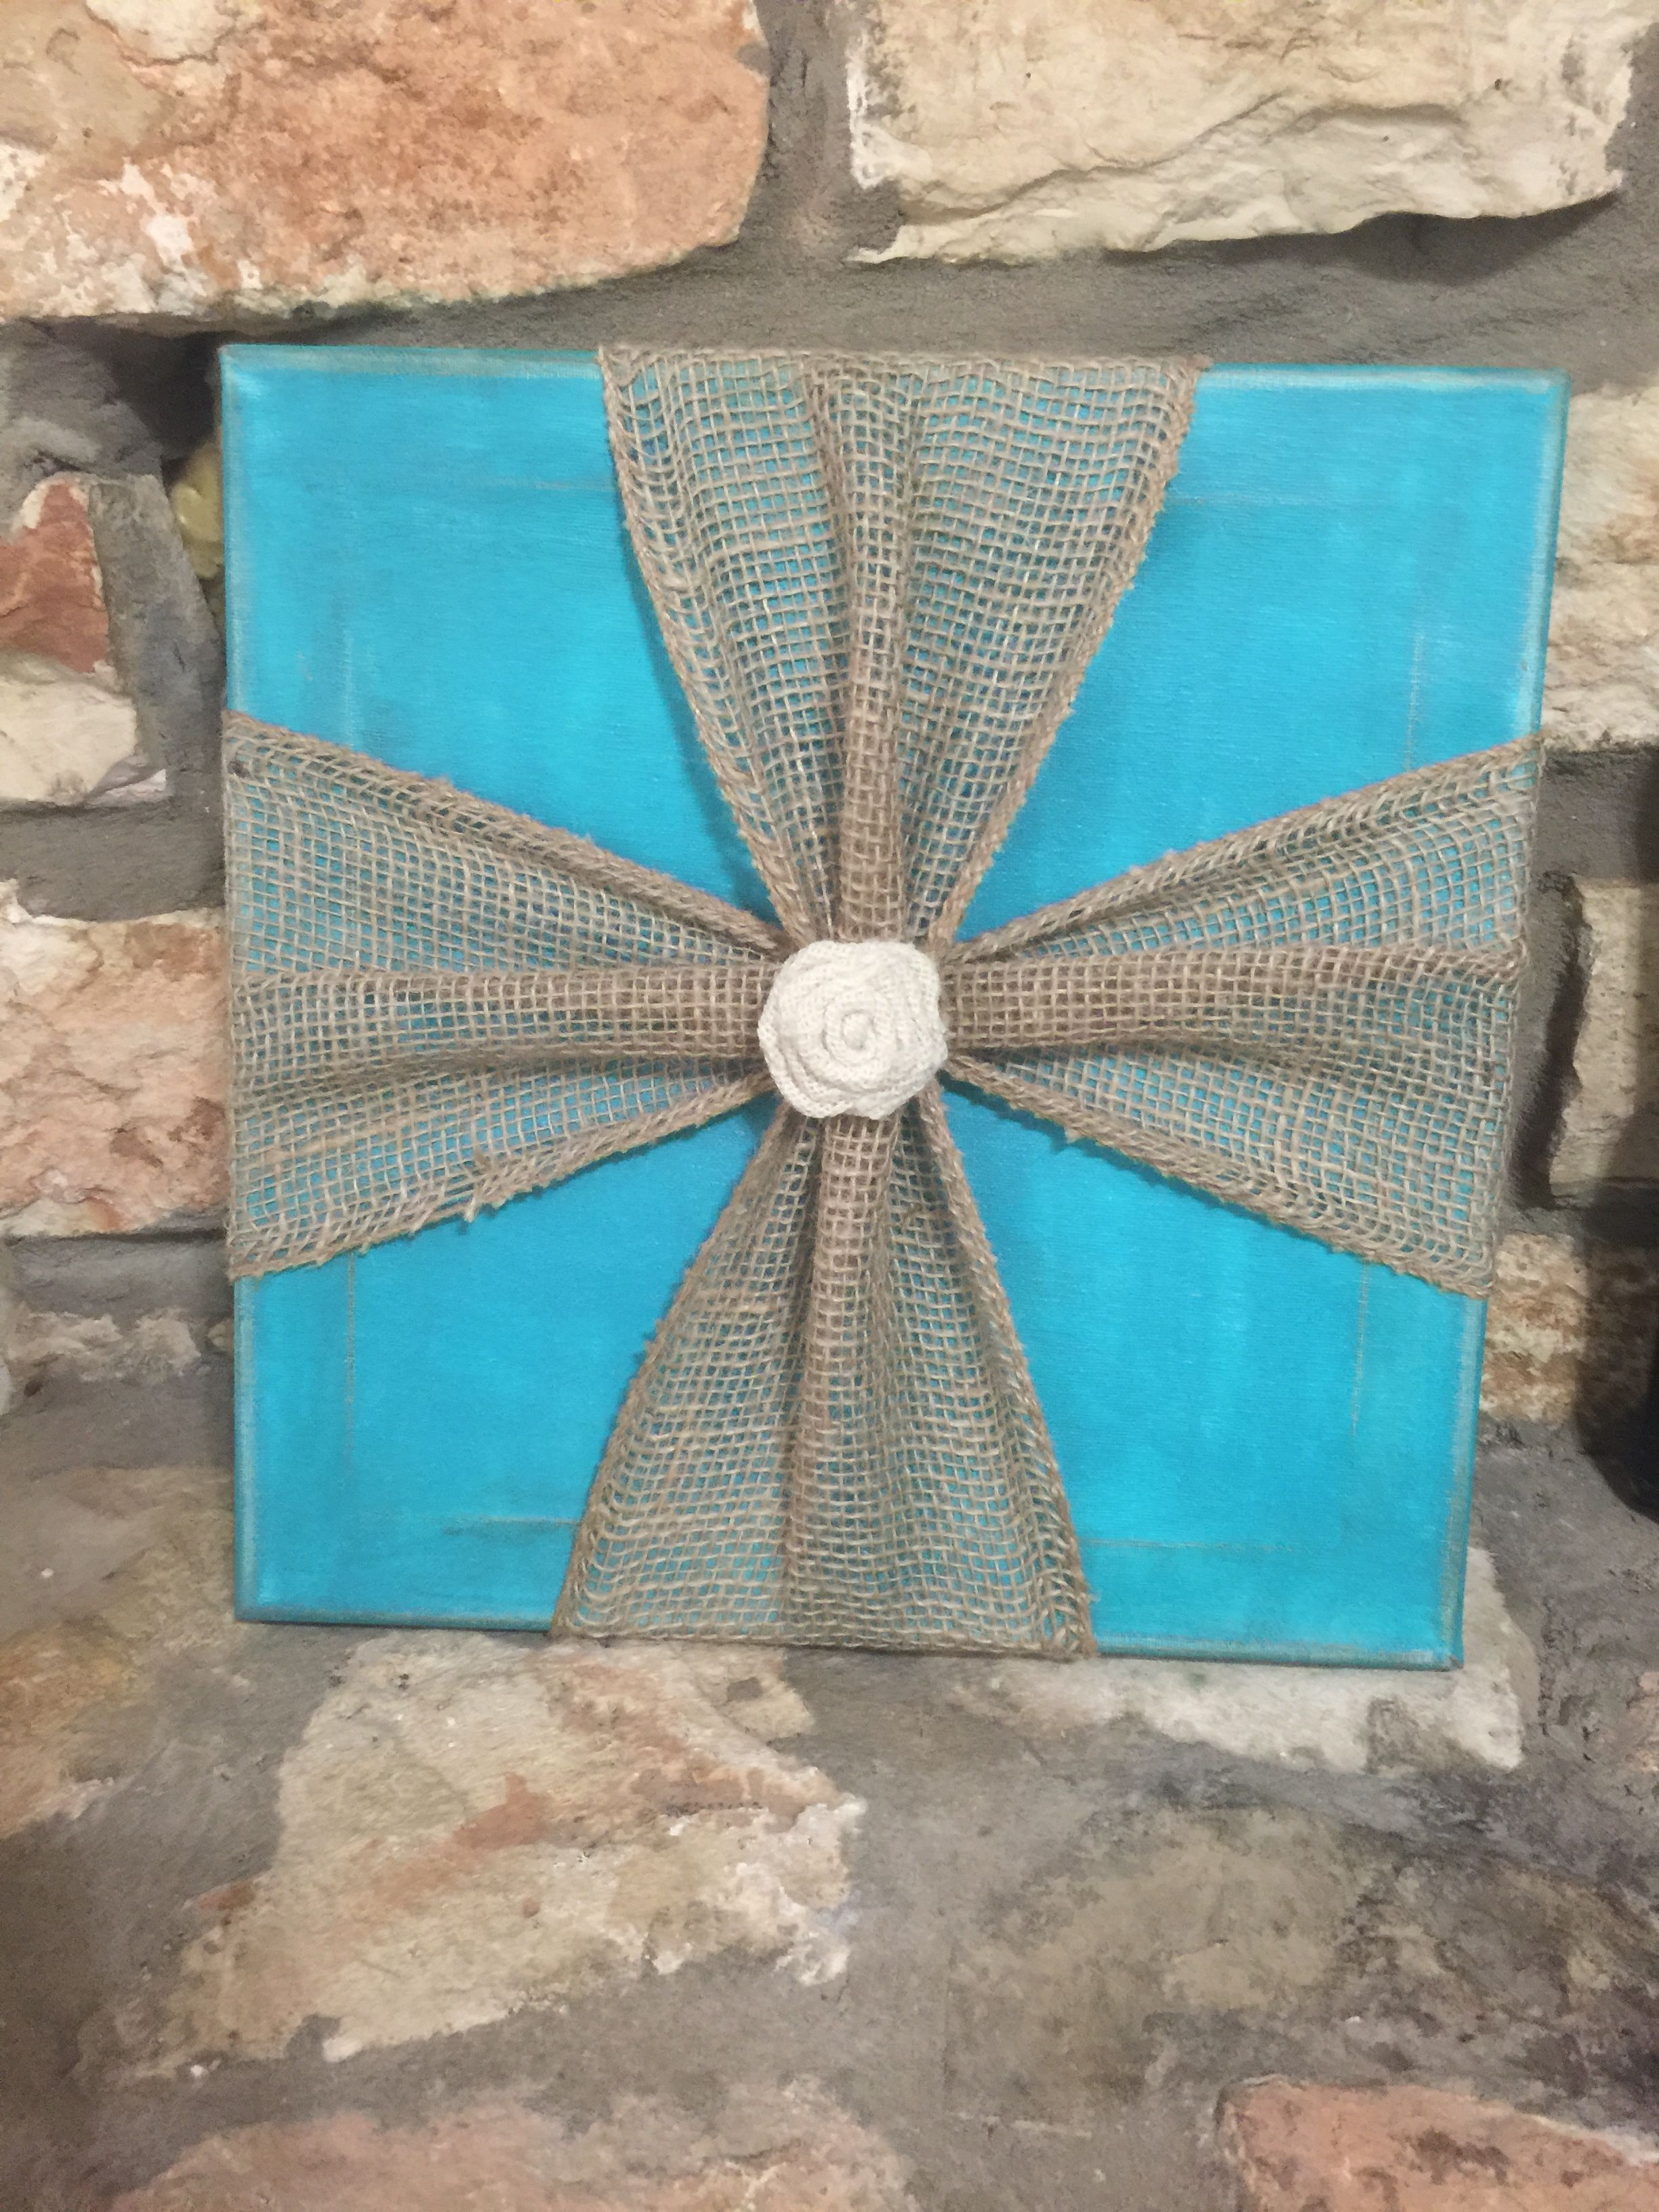 Distressed painted turquoise canvas with burlap ribbon